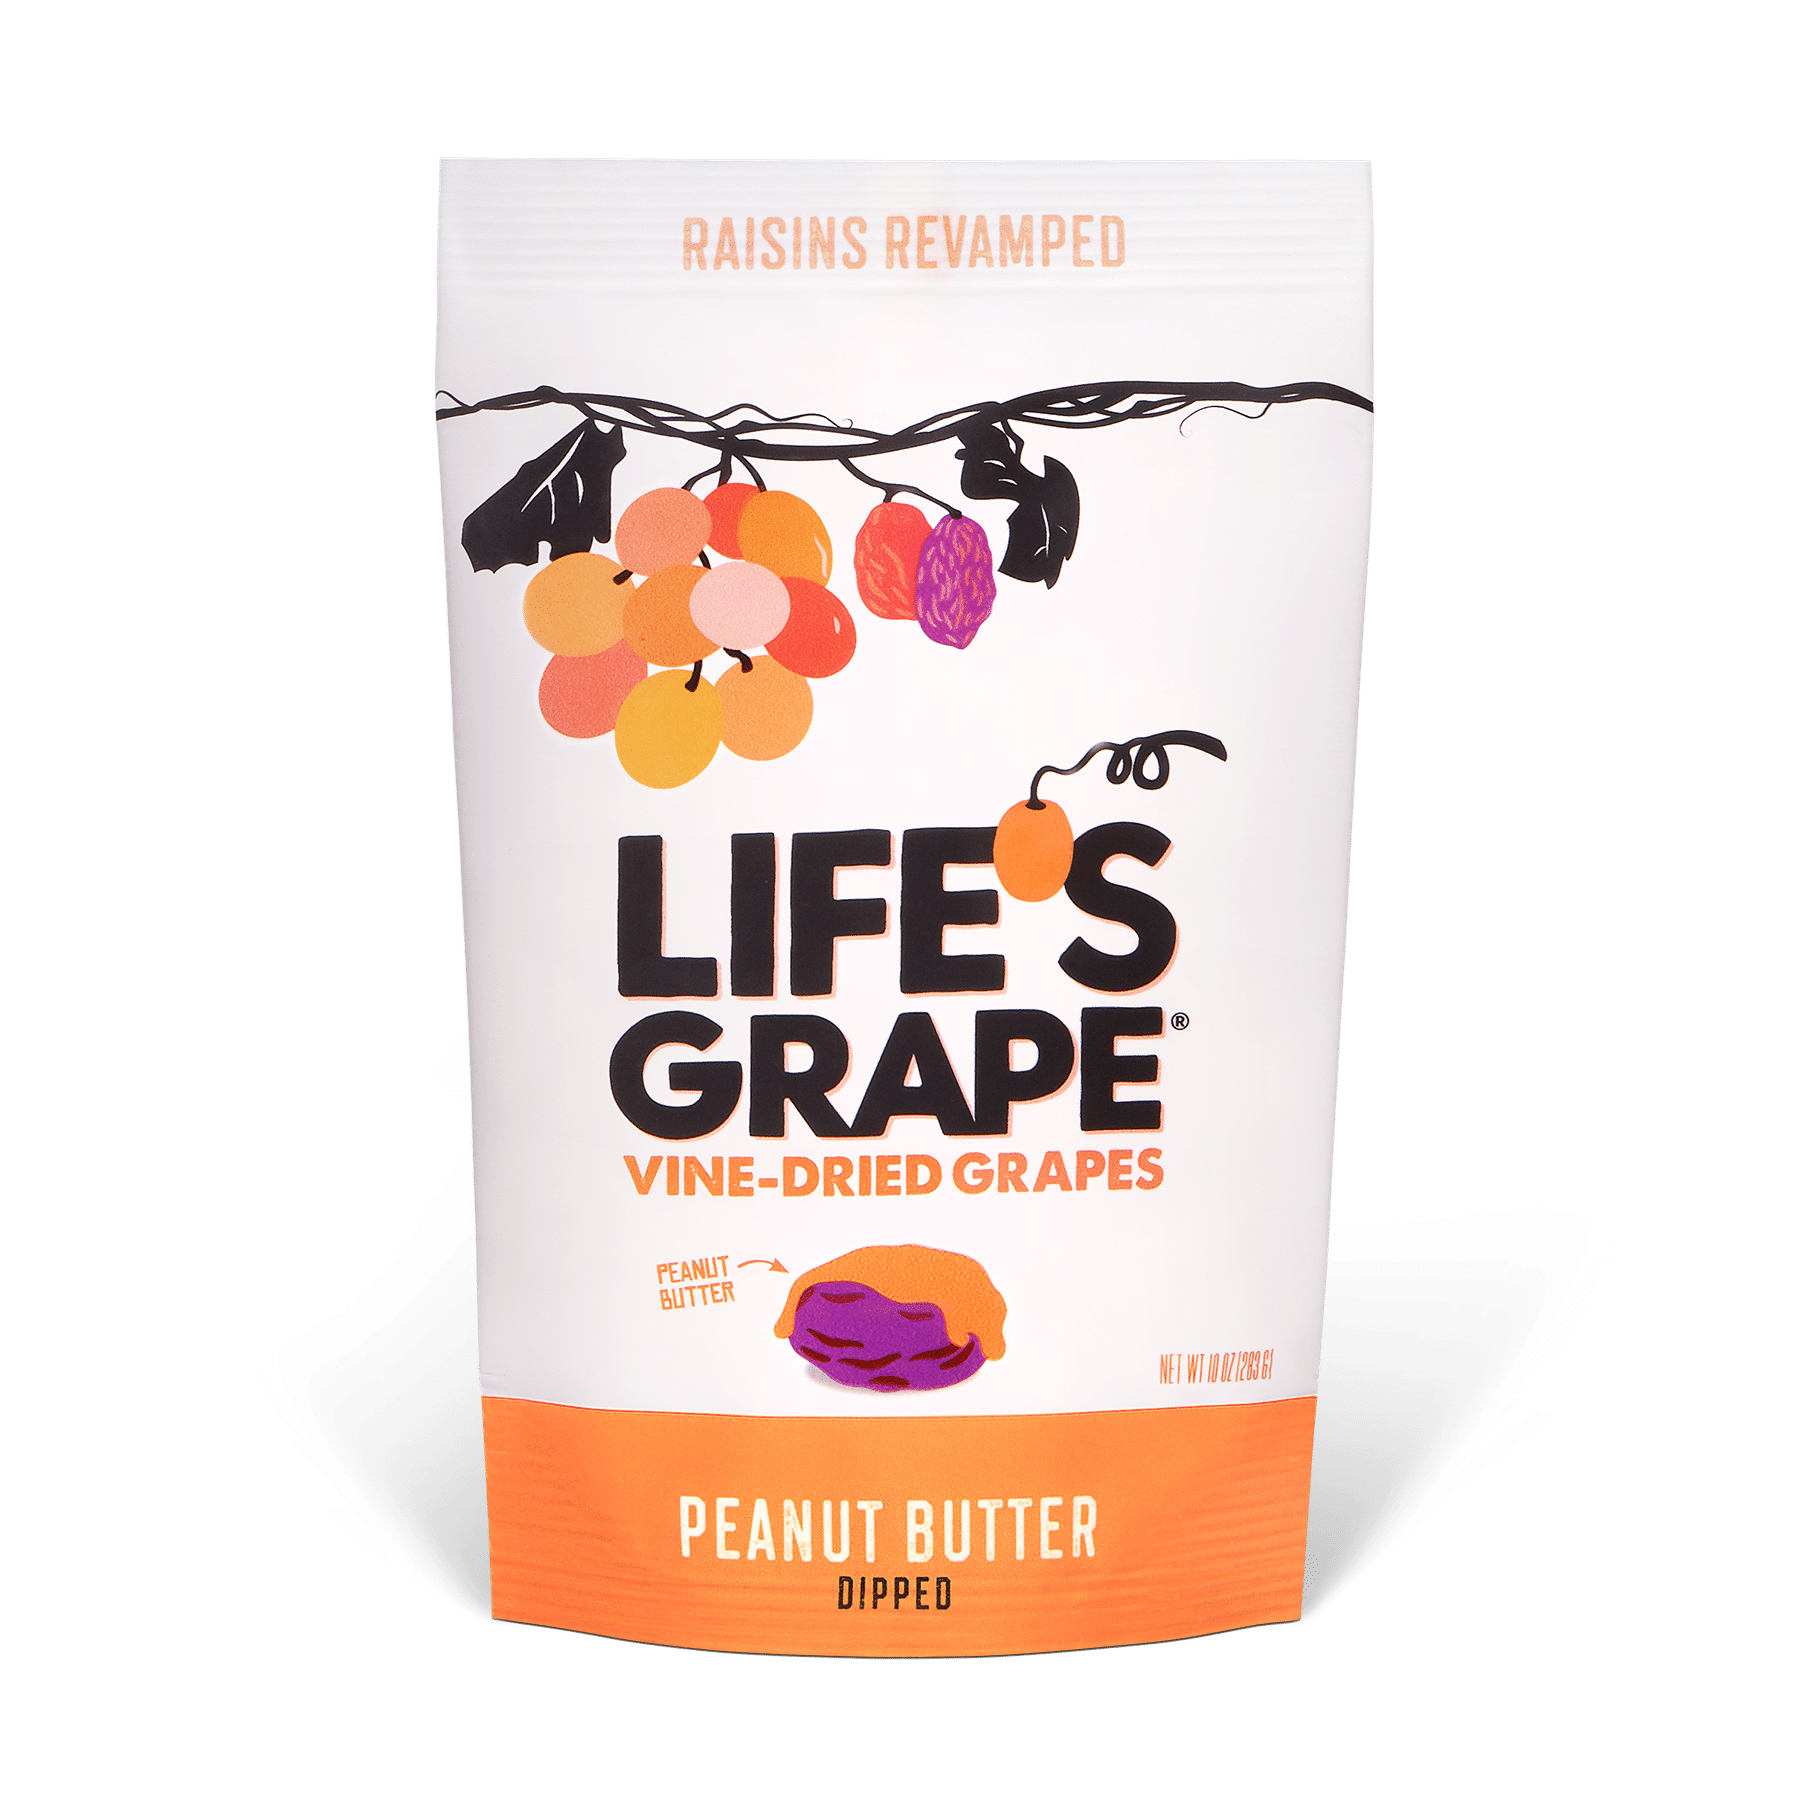 Life's Grape Launches New Peanut Butter Dipped Vine-Dried Grapes